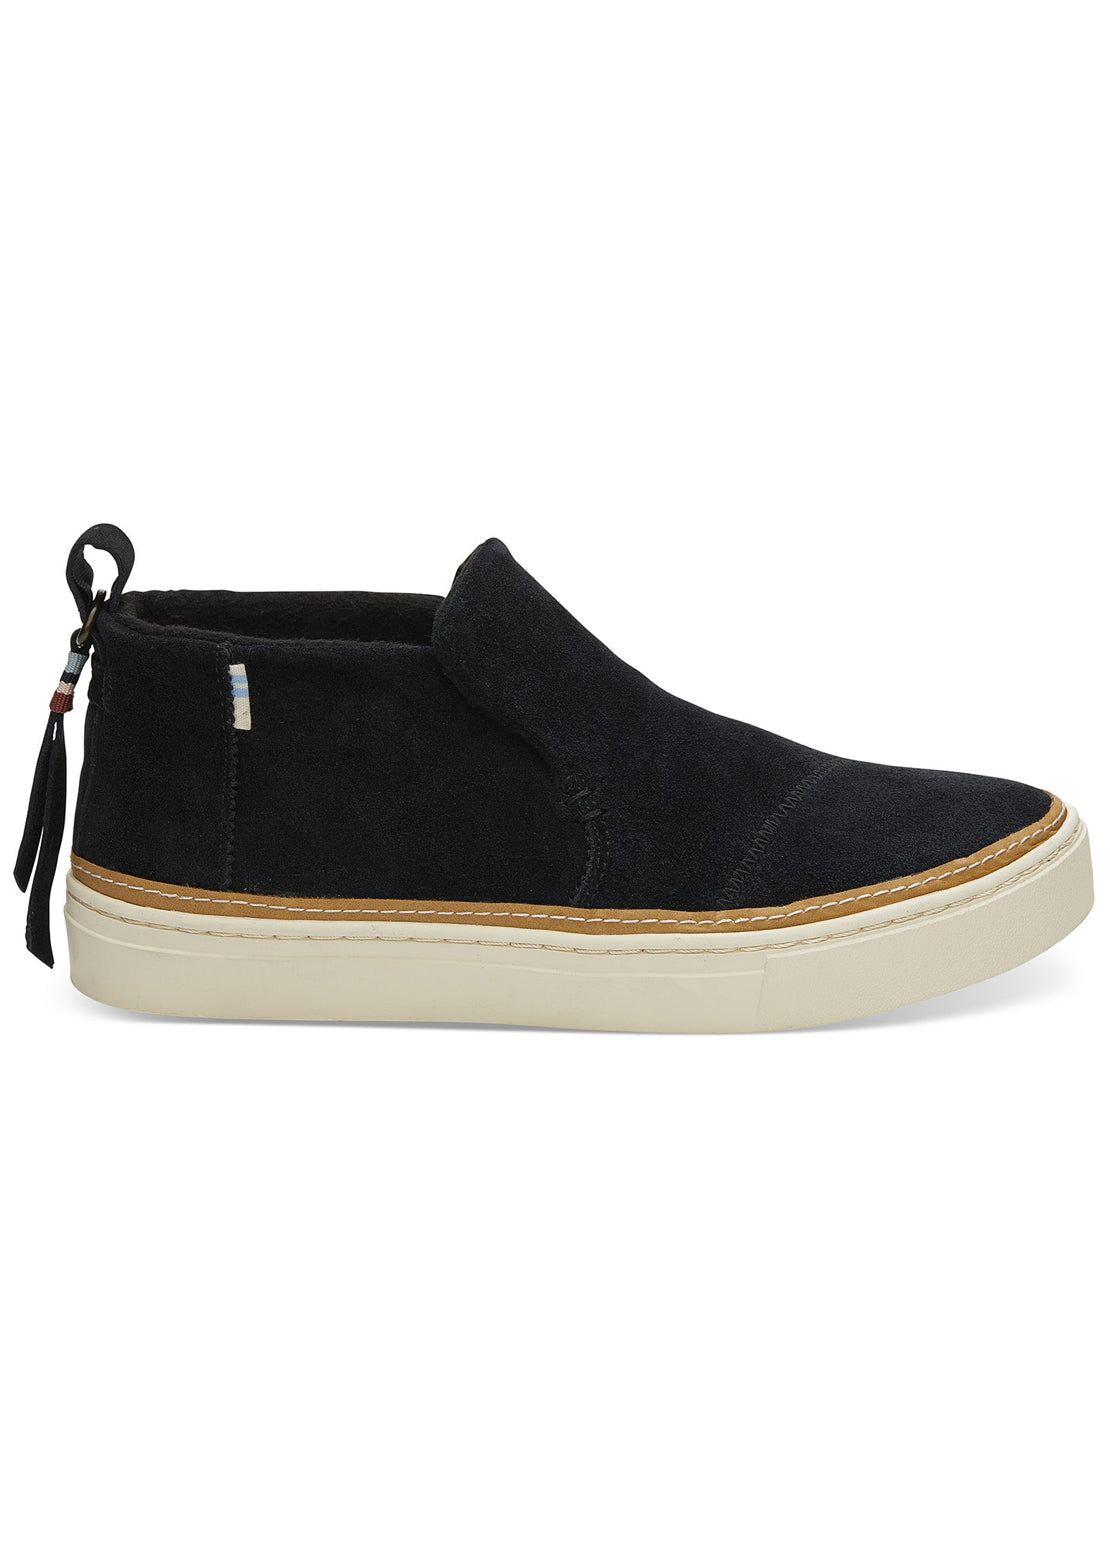 Toms Women's Paxton Shoes Black Suede